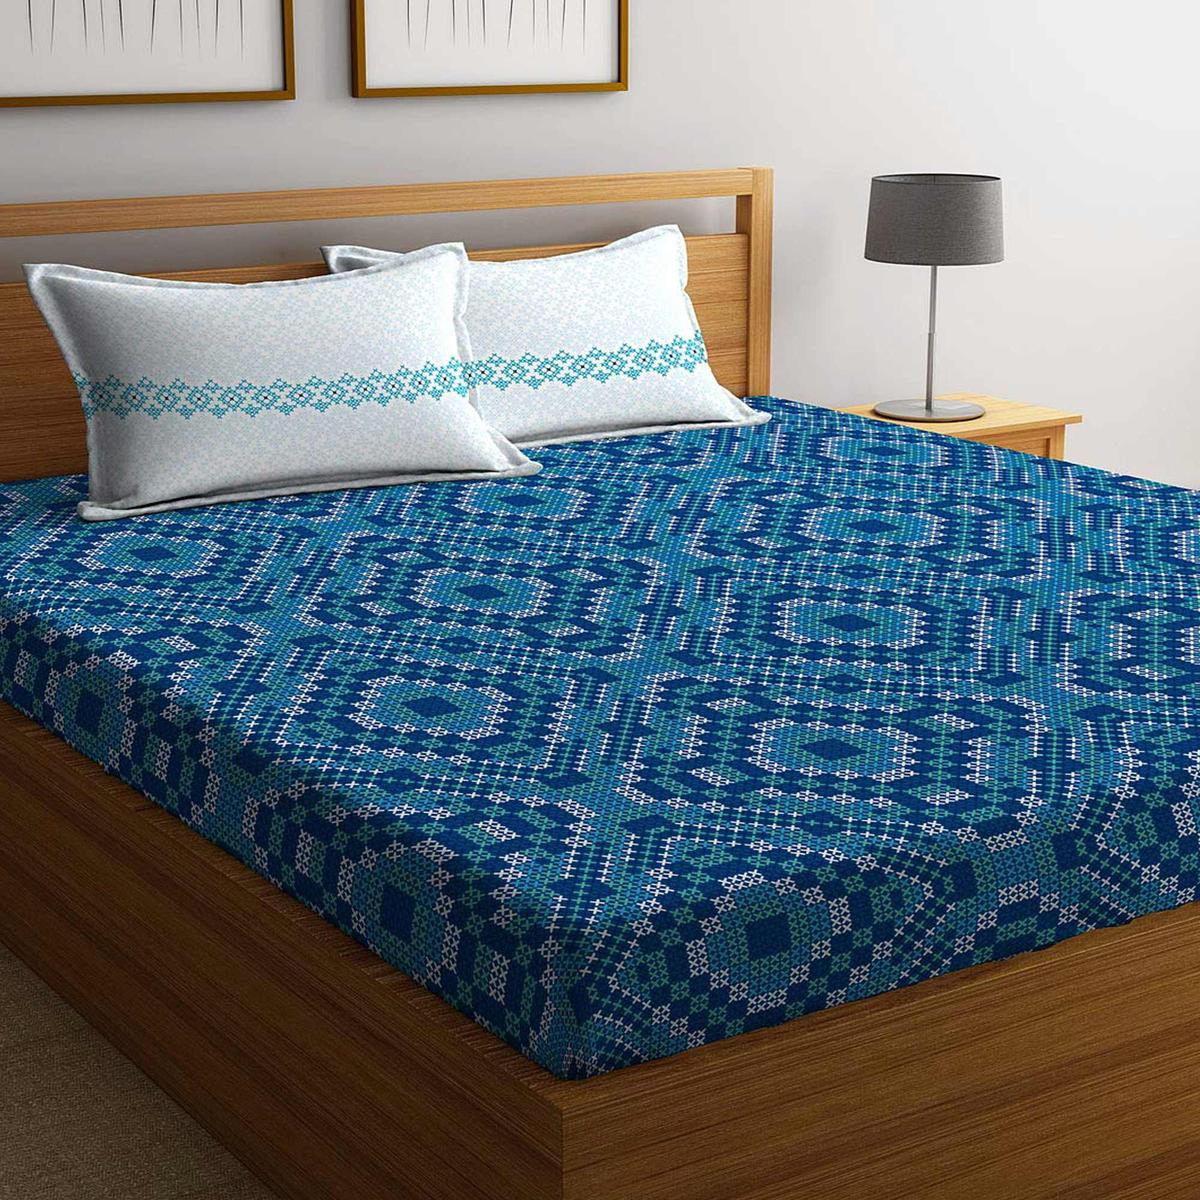 Stellar Home USA IRIS Printed Cotton 104 TC Double Bedsheet with 2 Pillow Cover